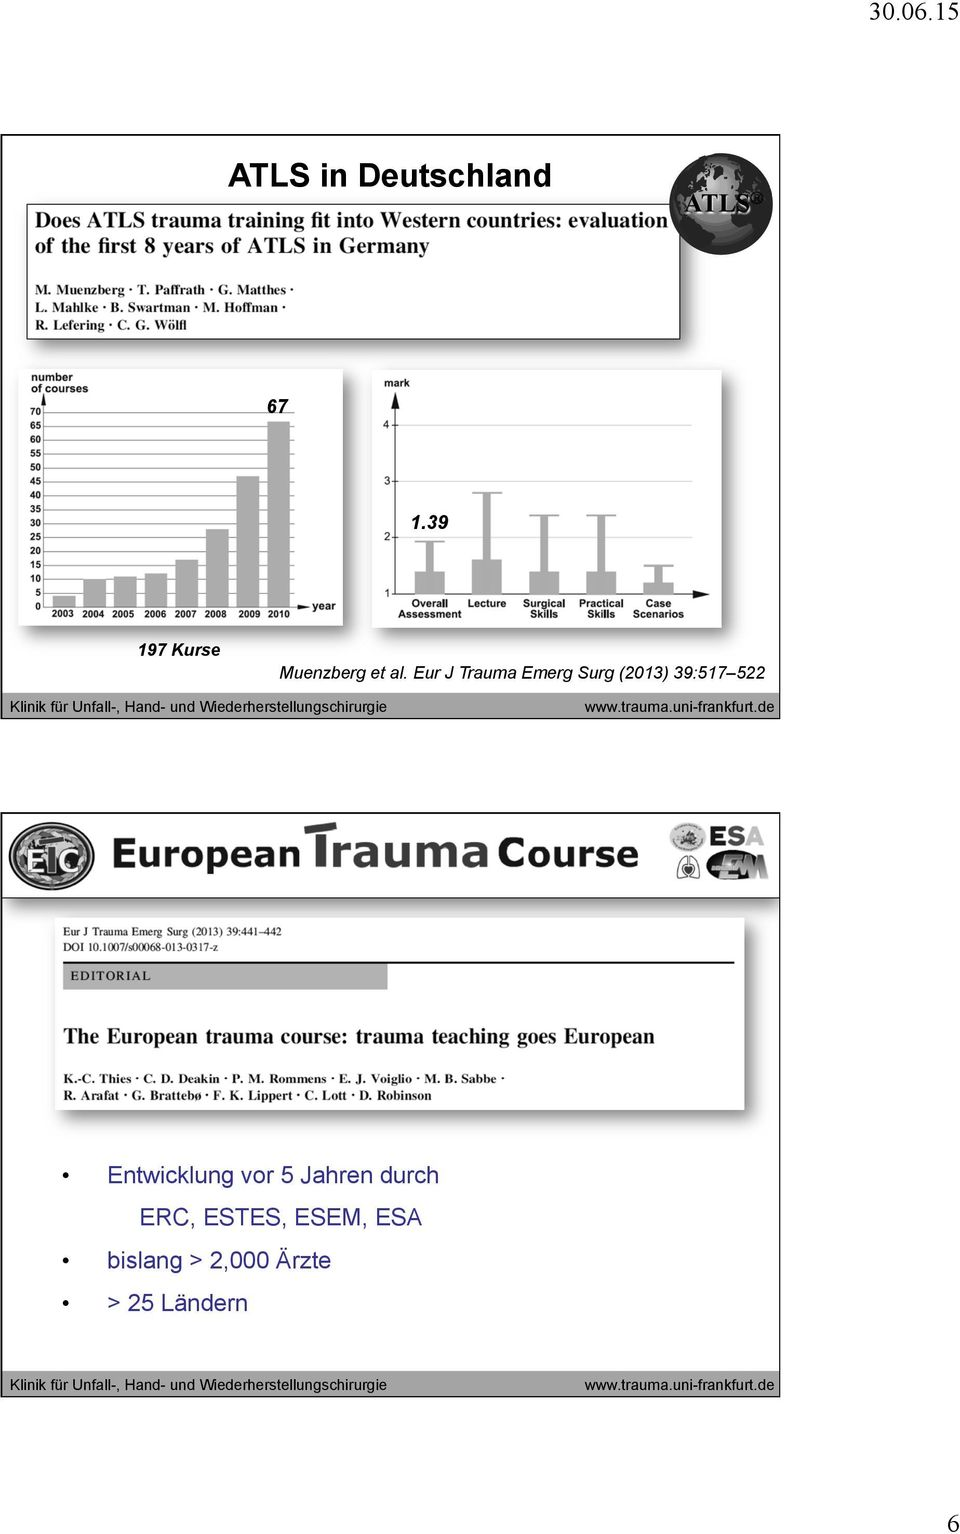 Eur J Trauma Emerg Surg (2013) 39:517 522